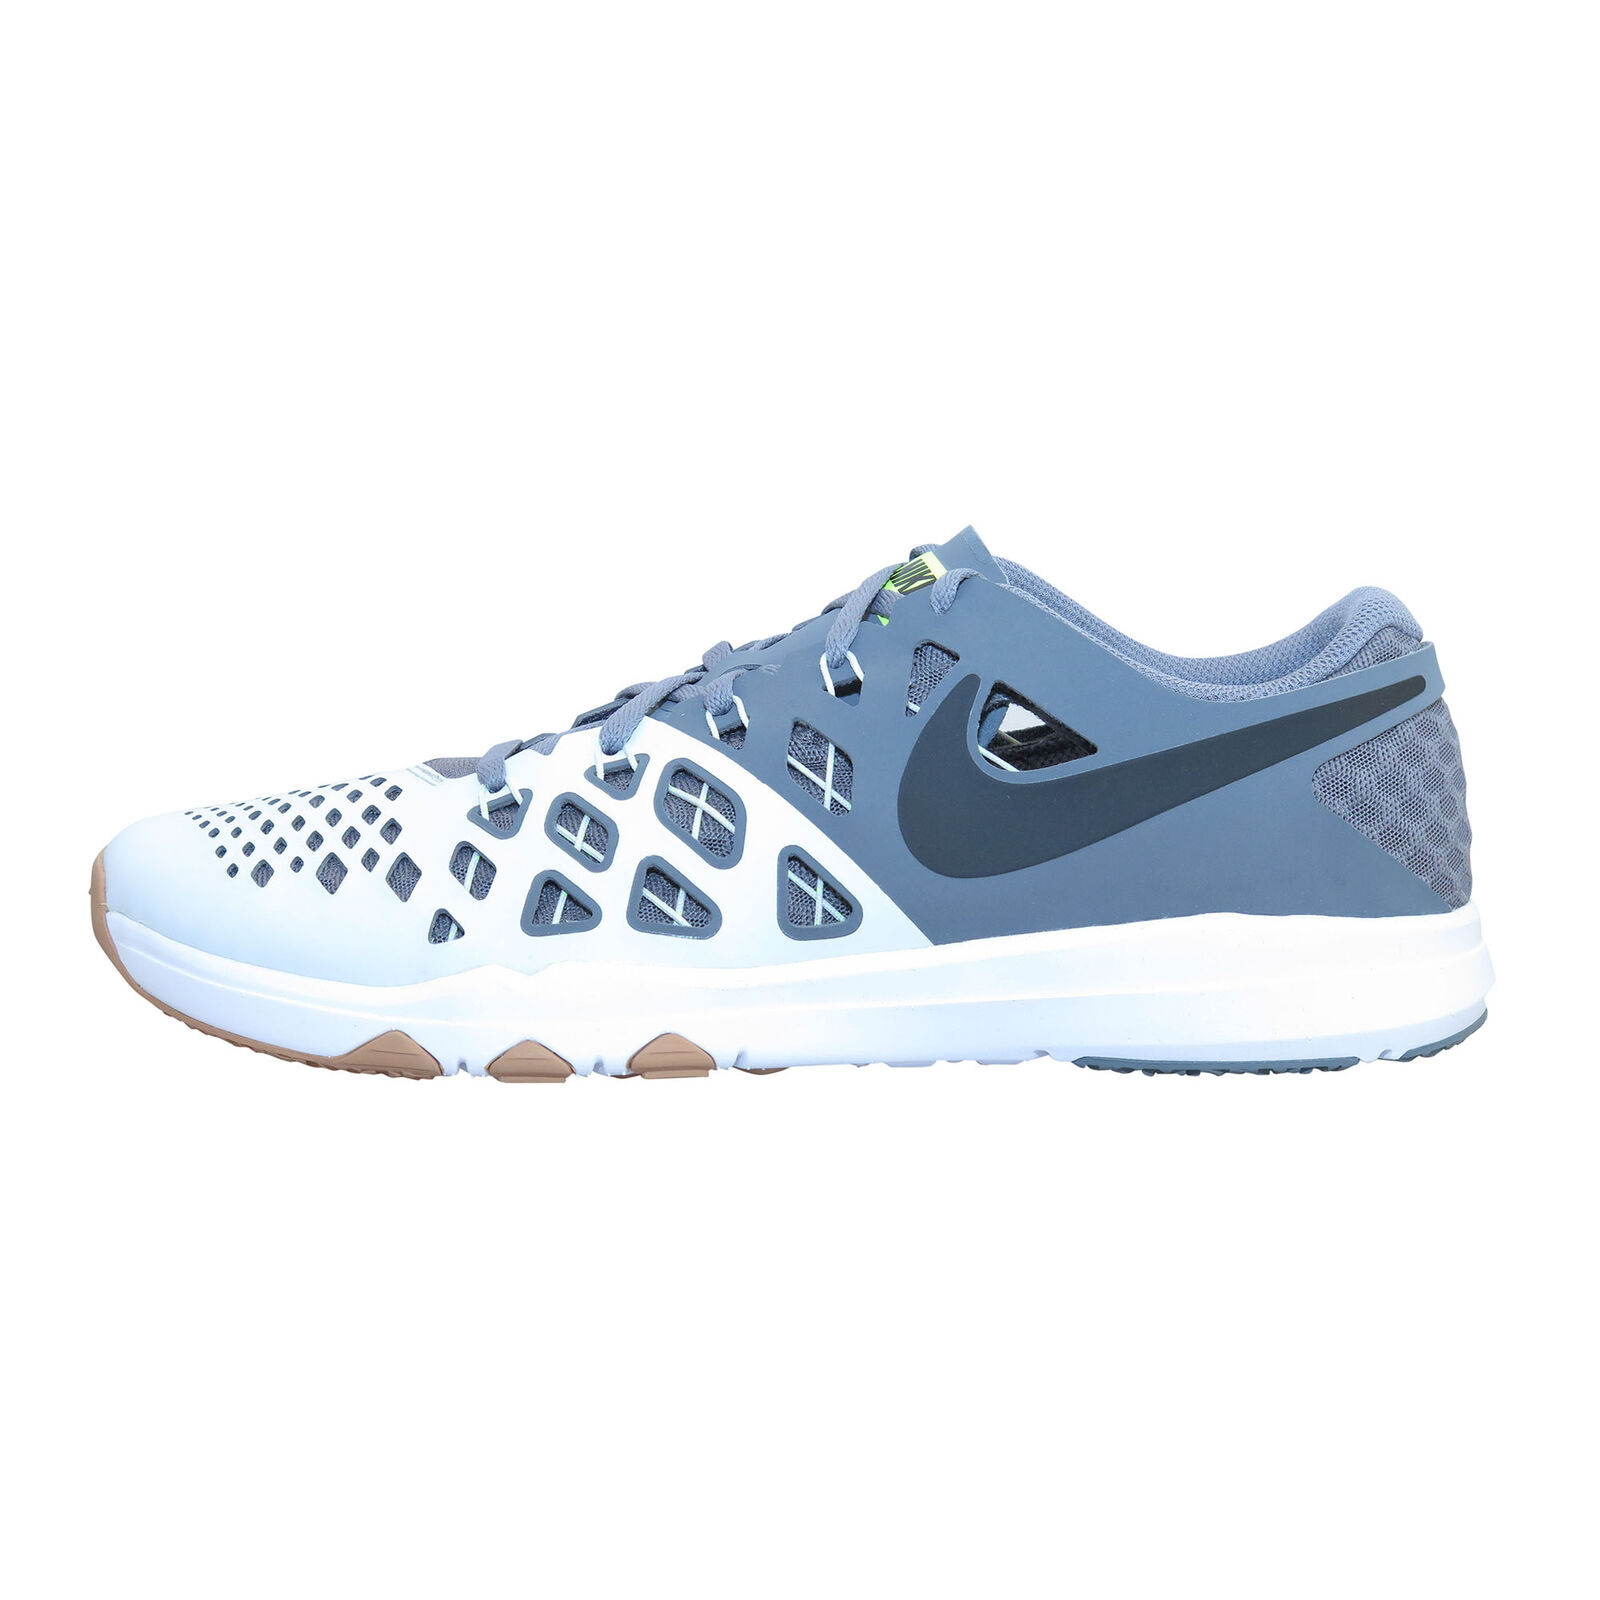 Nike Train Speed 4  White Grey - Training shoes 843937-005  all in high quality and low price